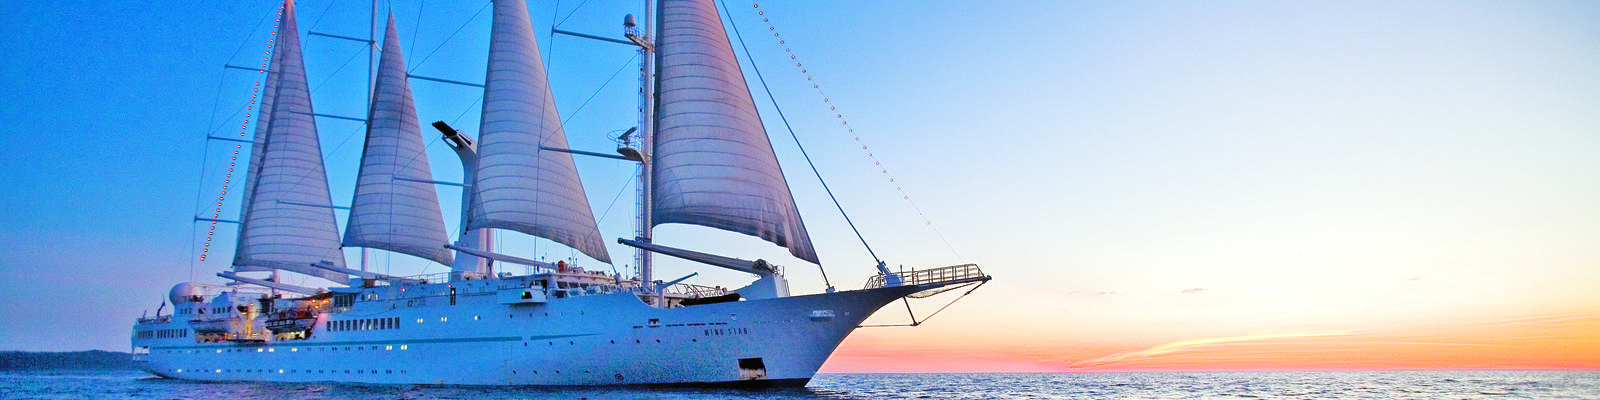 6 Reasons Why a Wind Star Cruise is the Ideal Romantic Vacation